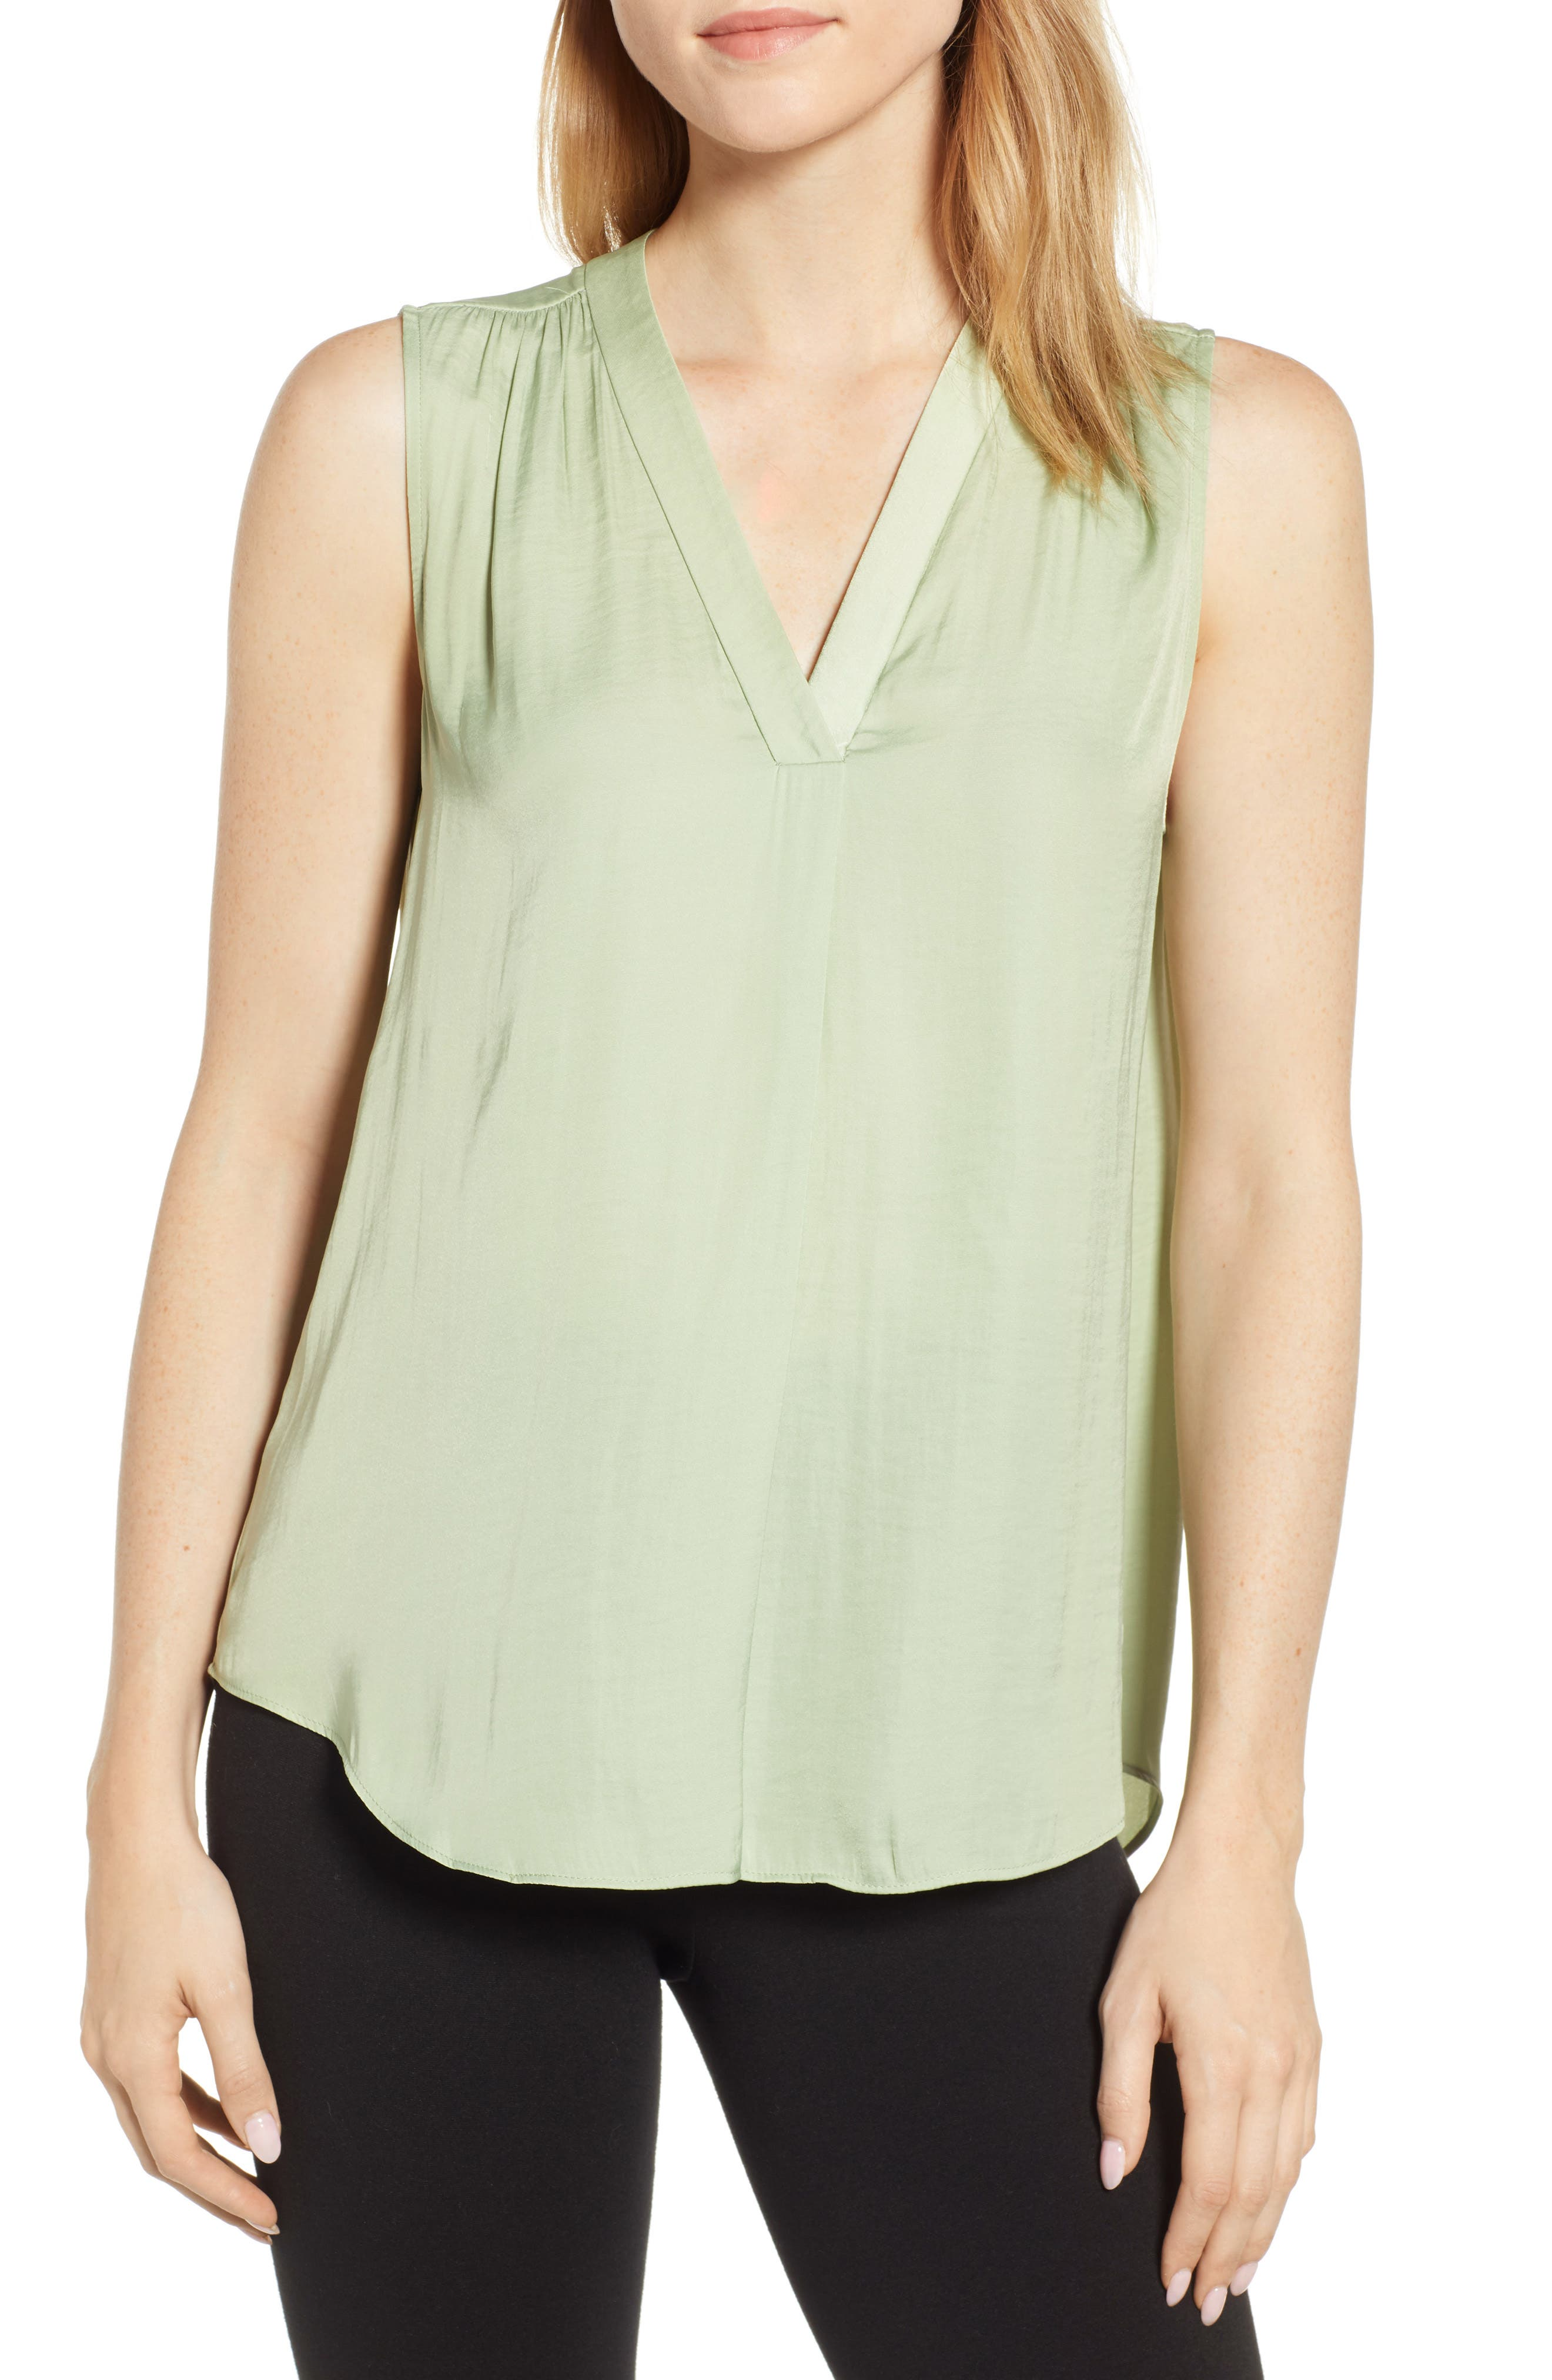 VINCE CAMUTO Sleeveless Rumple Blouse, Main, color, 366